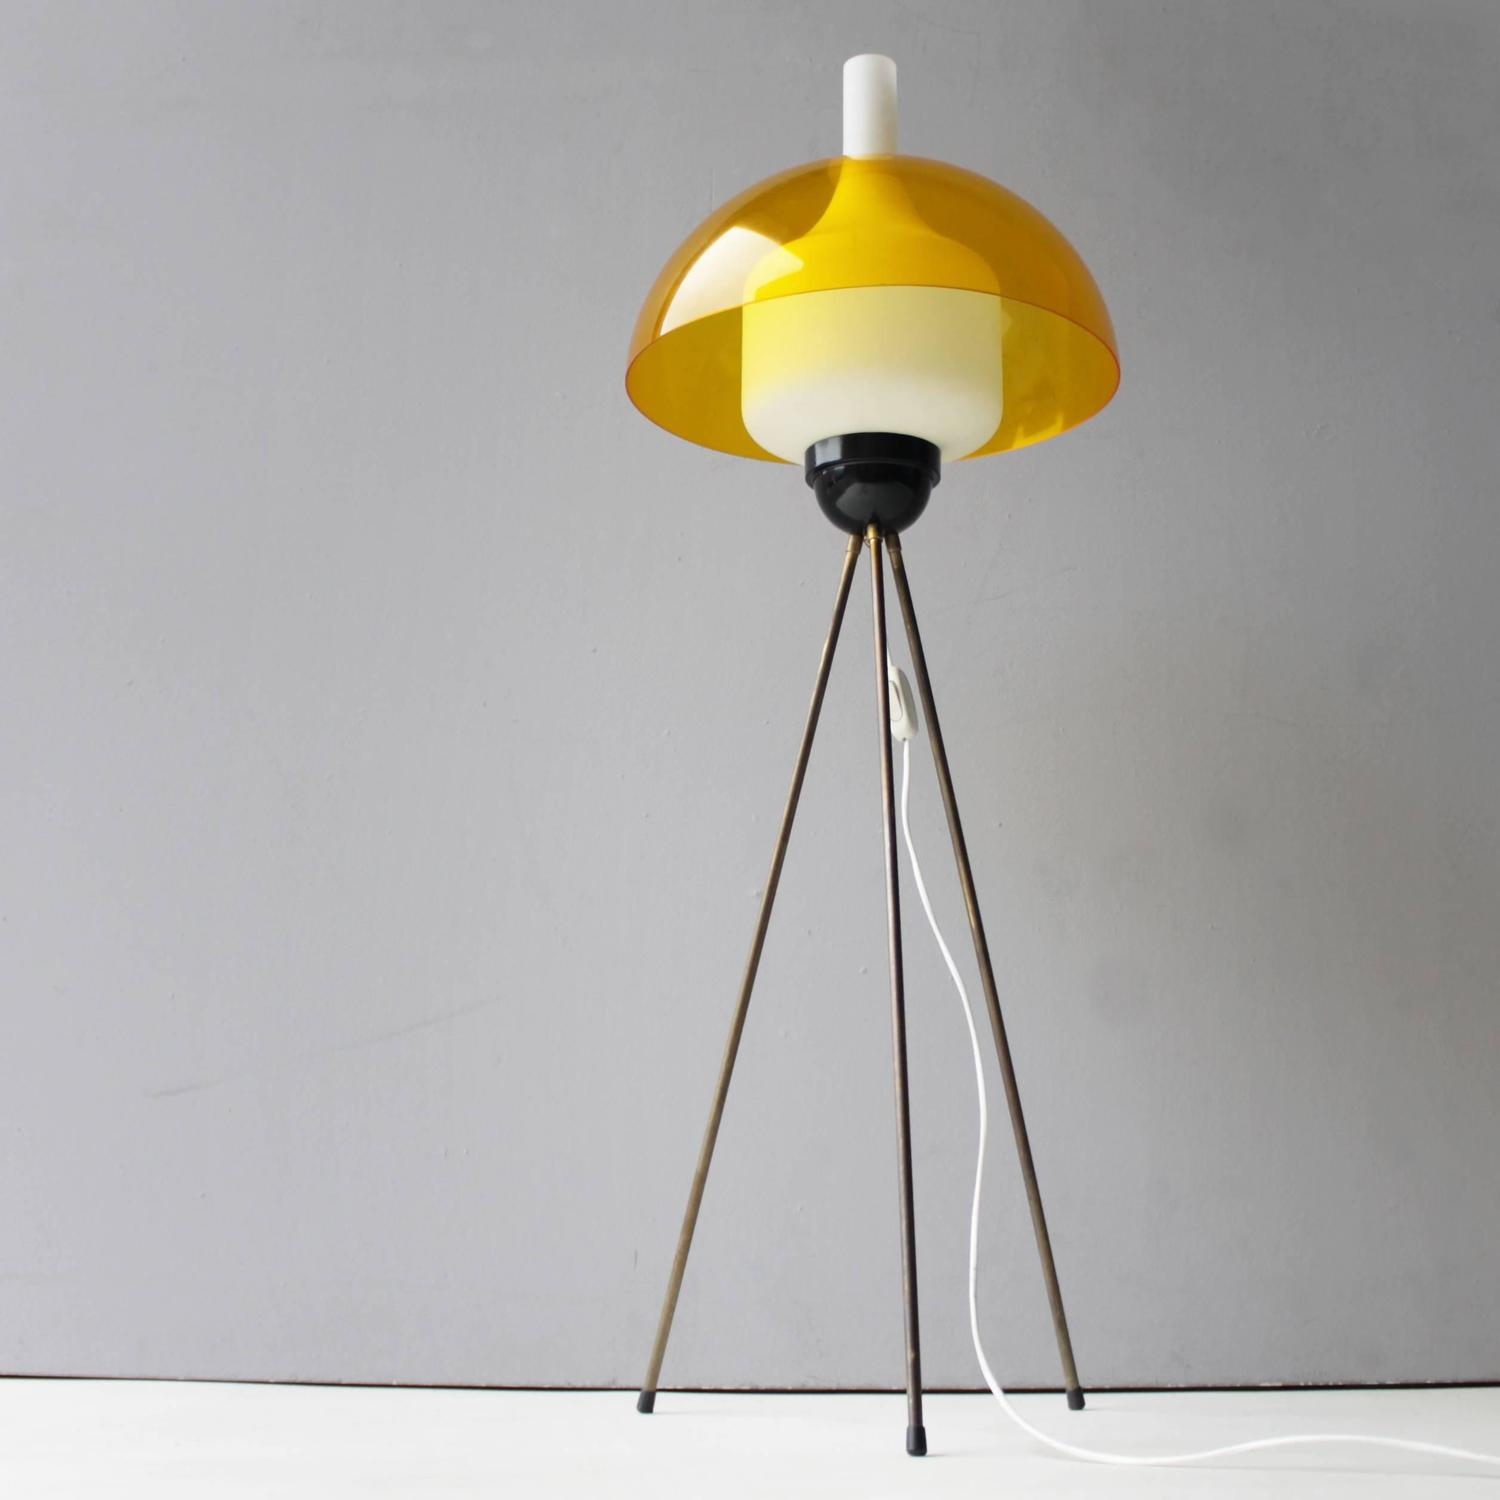 Tripod Floor Lamp By Stilux Italy For Sale At 1stdibs